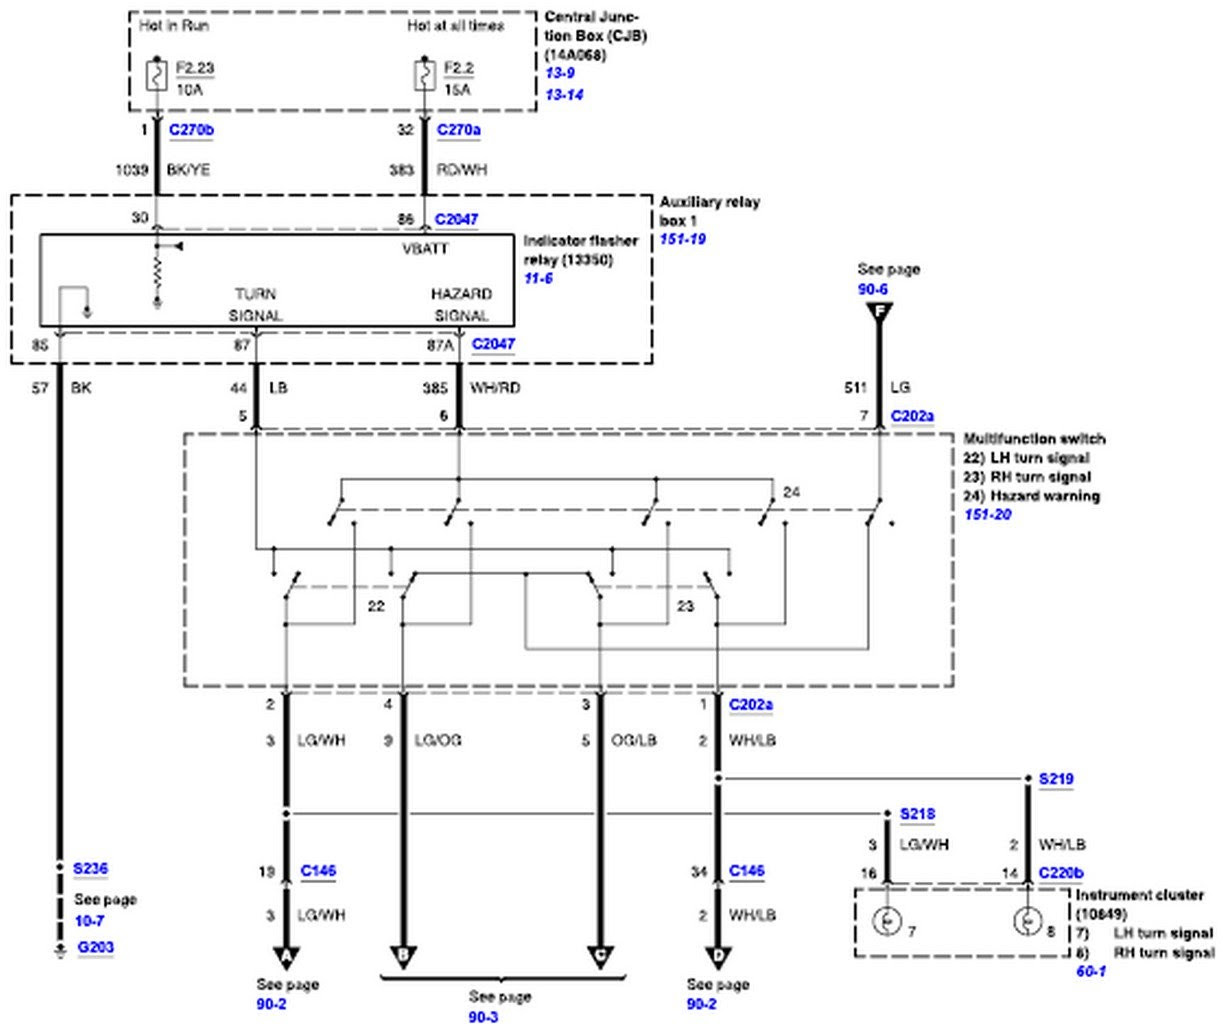 Ford F650 Wiring Schematic - Wiring Diagram | 2015 Ford F650 Wiring Diagram |  | Wiring Diagram